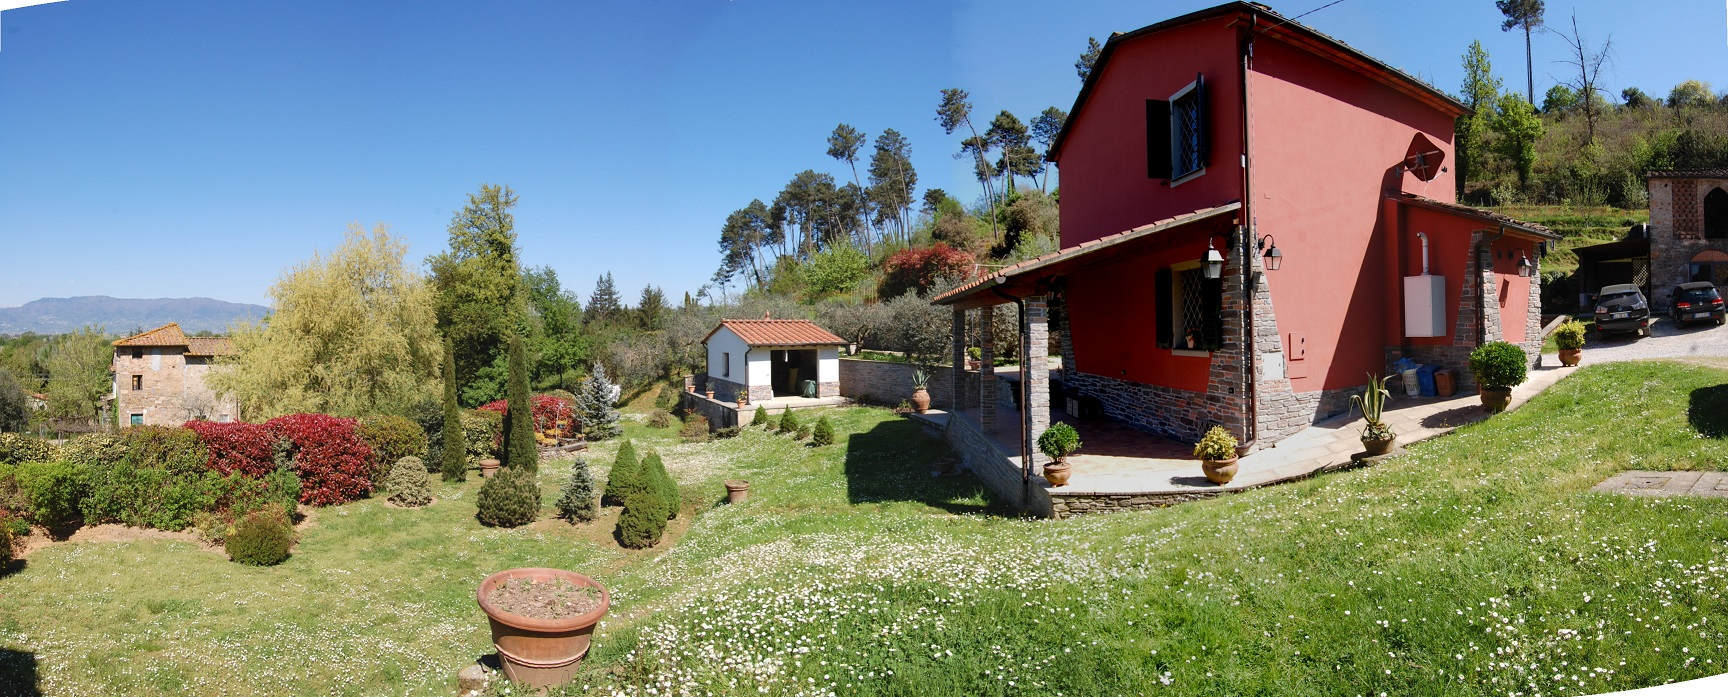 Casa Bella - The smart choice for vacation in the Lucca countryside